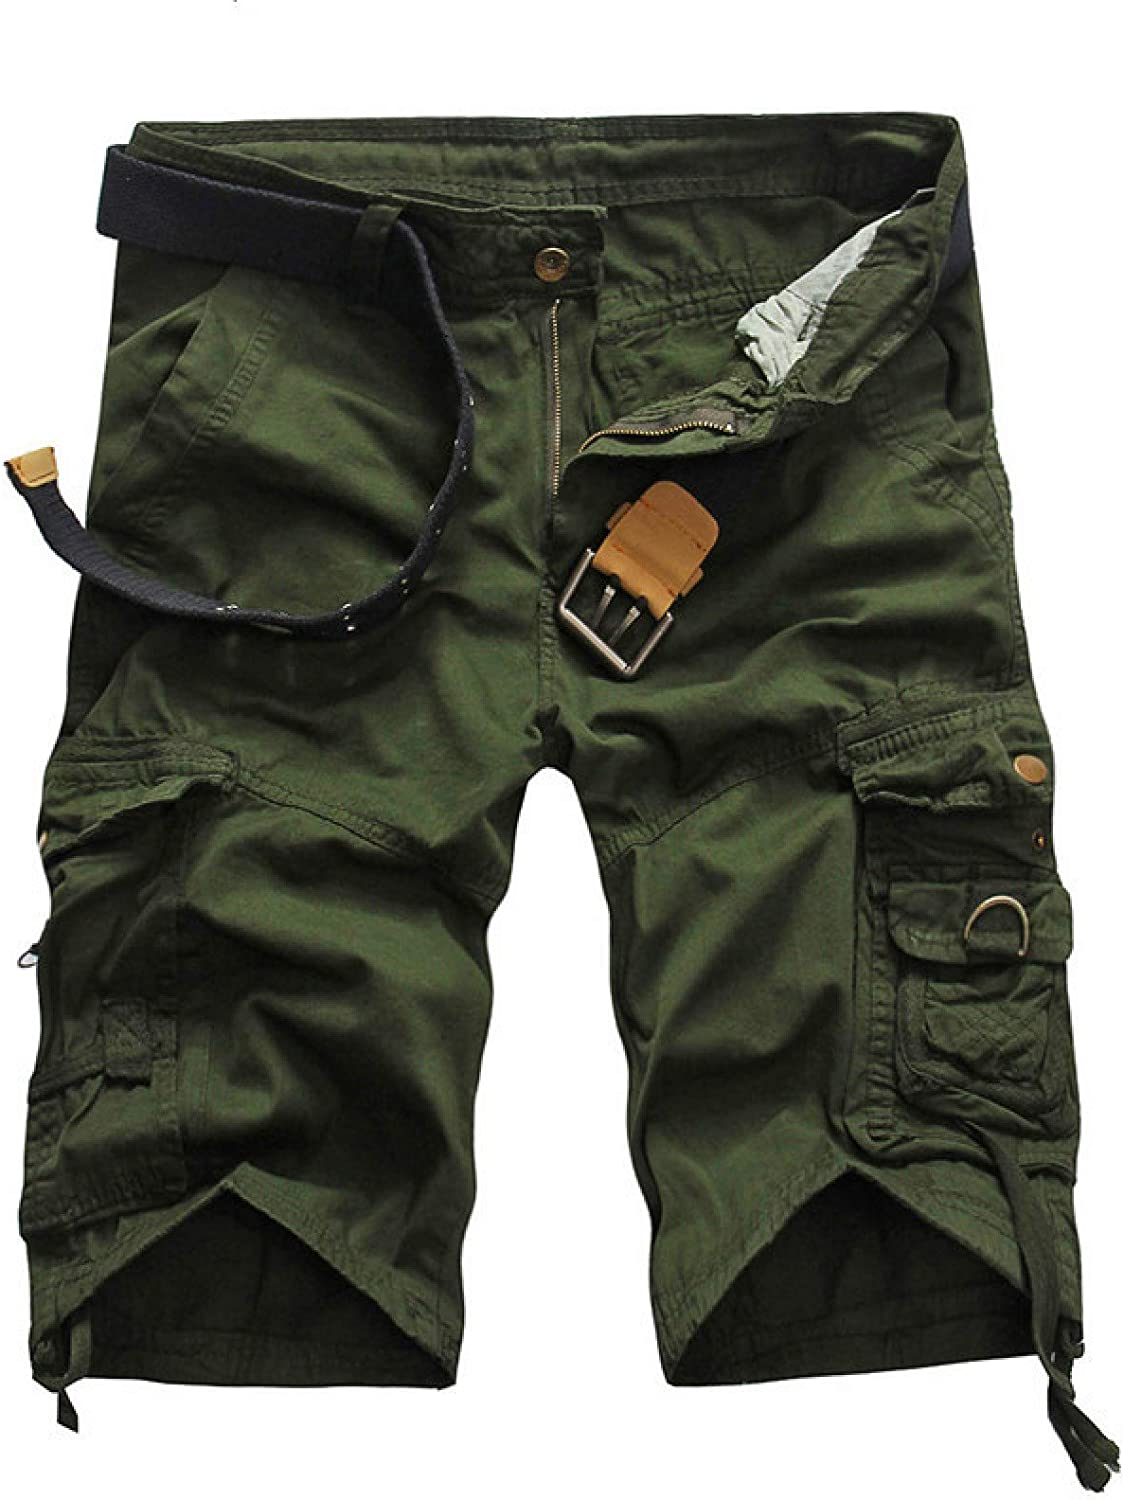 Wantess Men's Cargo Shorts Summer Loose Large Size Casual Comfortable Breathable Hiking